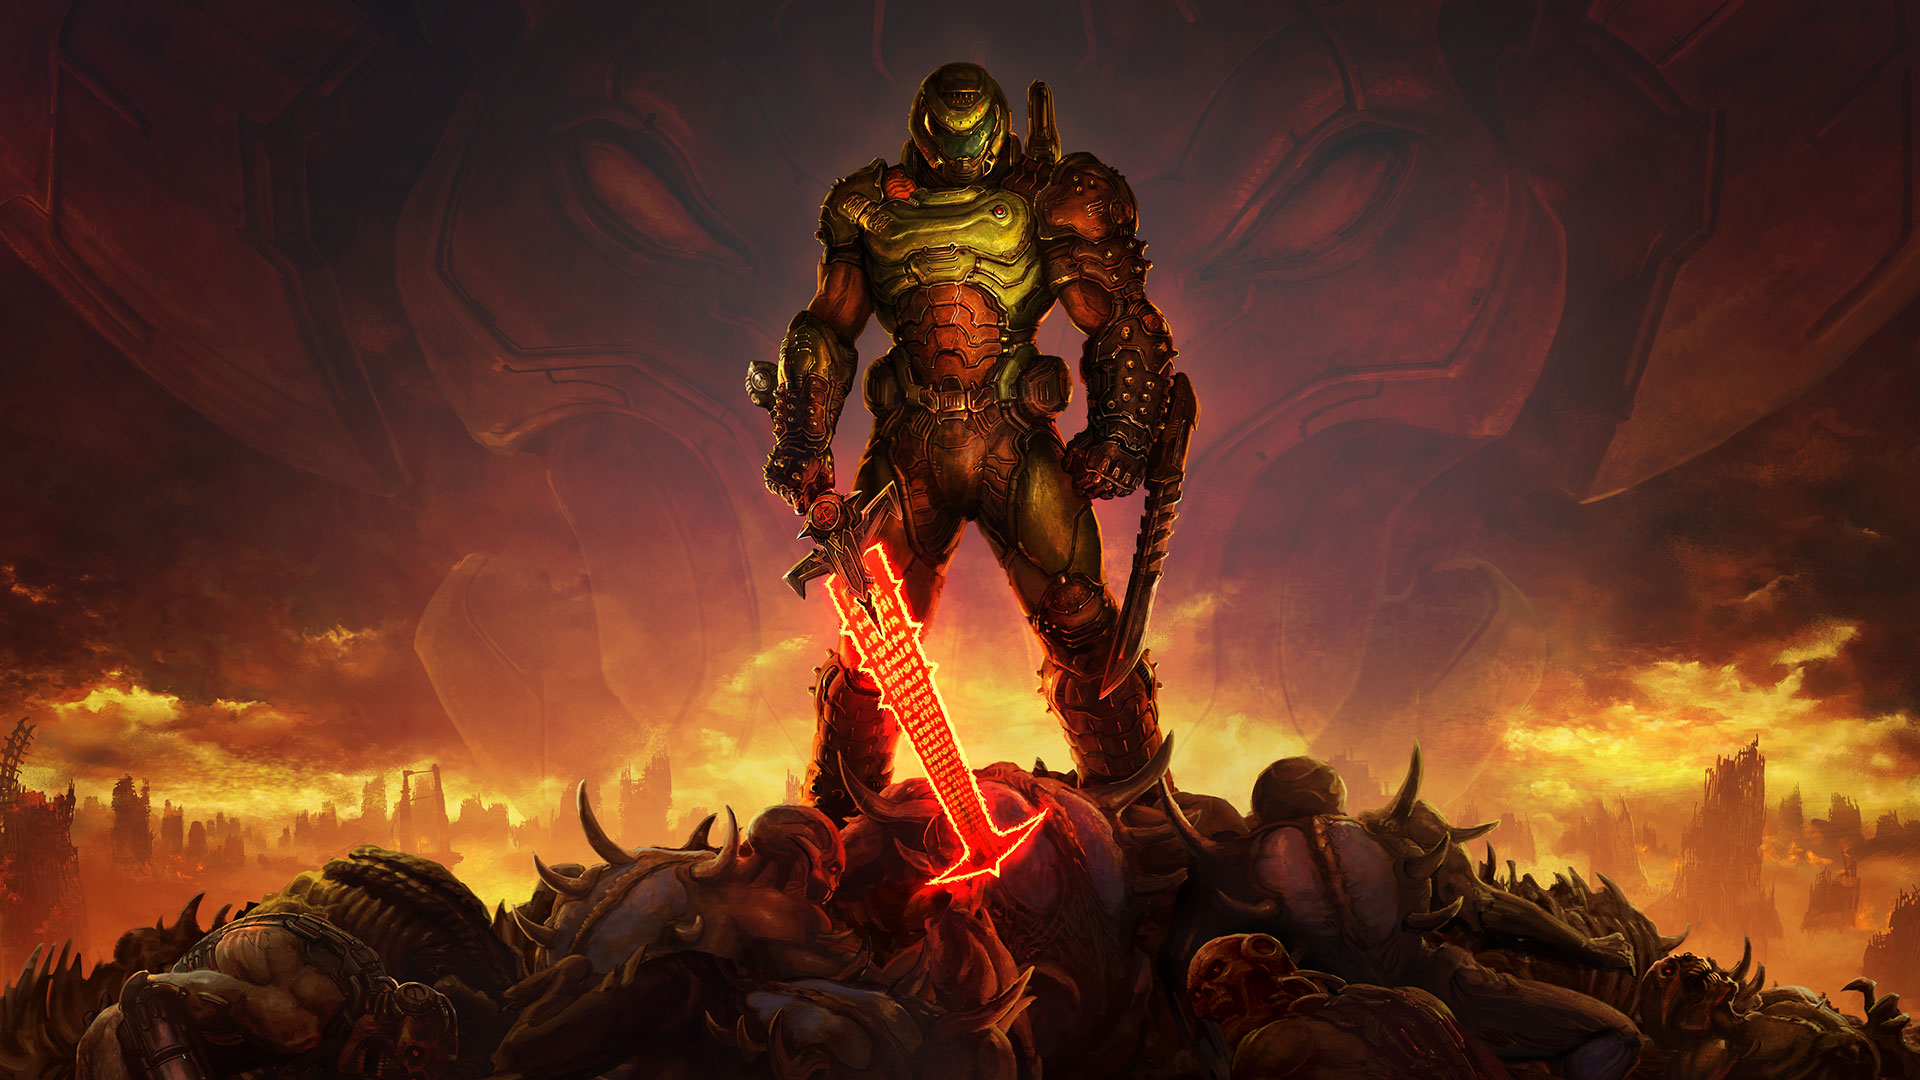 The_DOOM_Slayer_Wallpaper_1920x1080.jpg